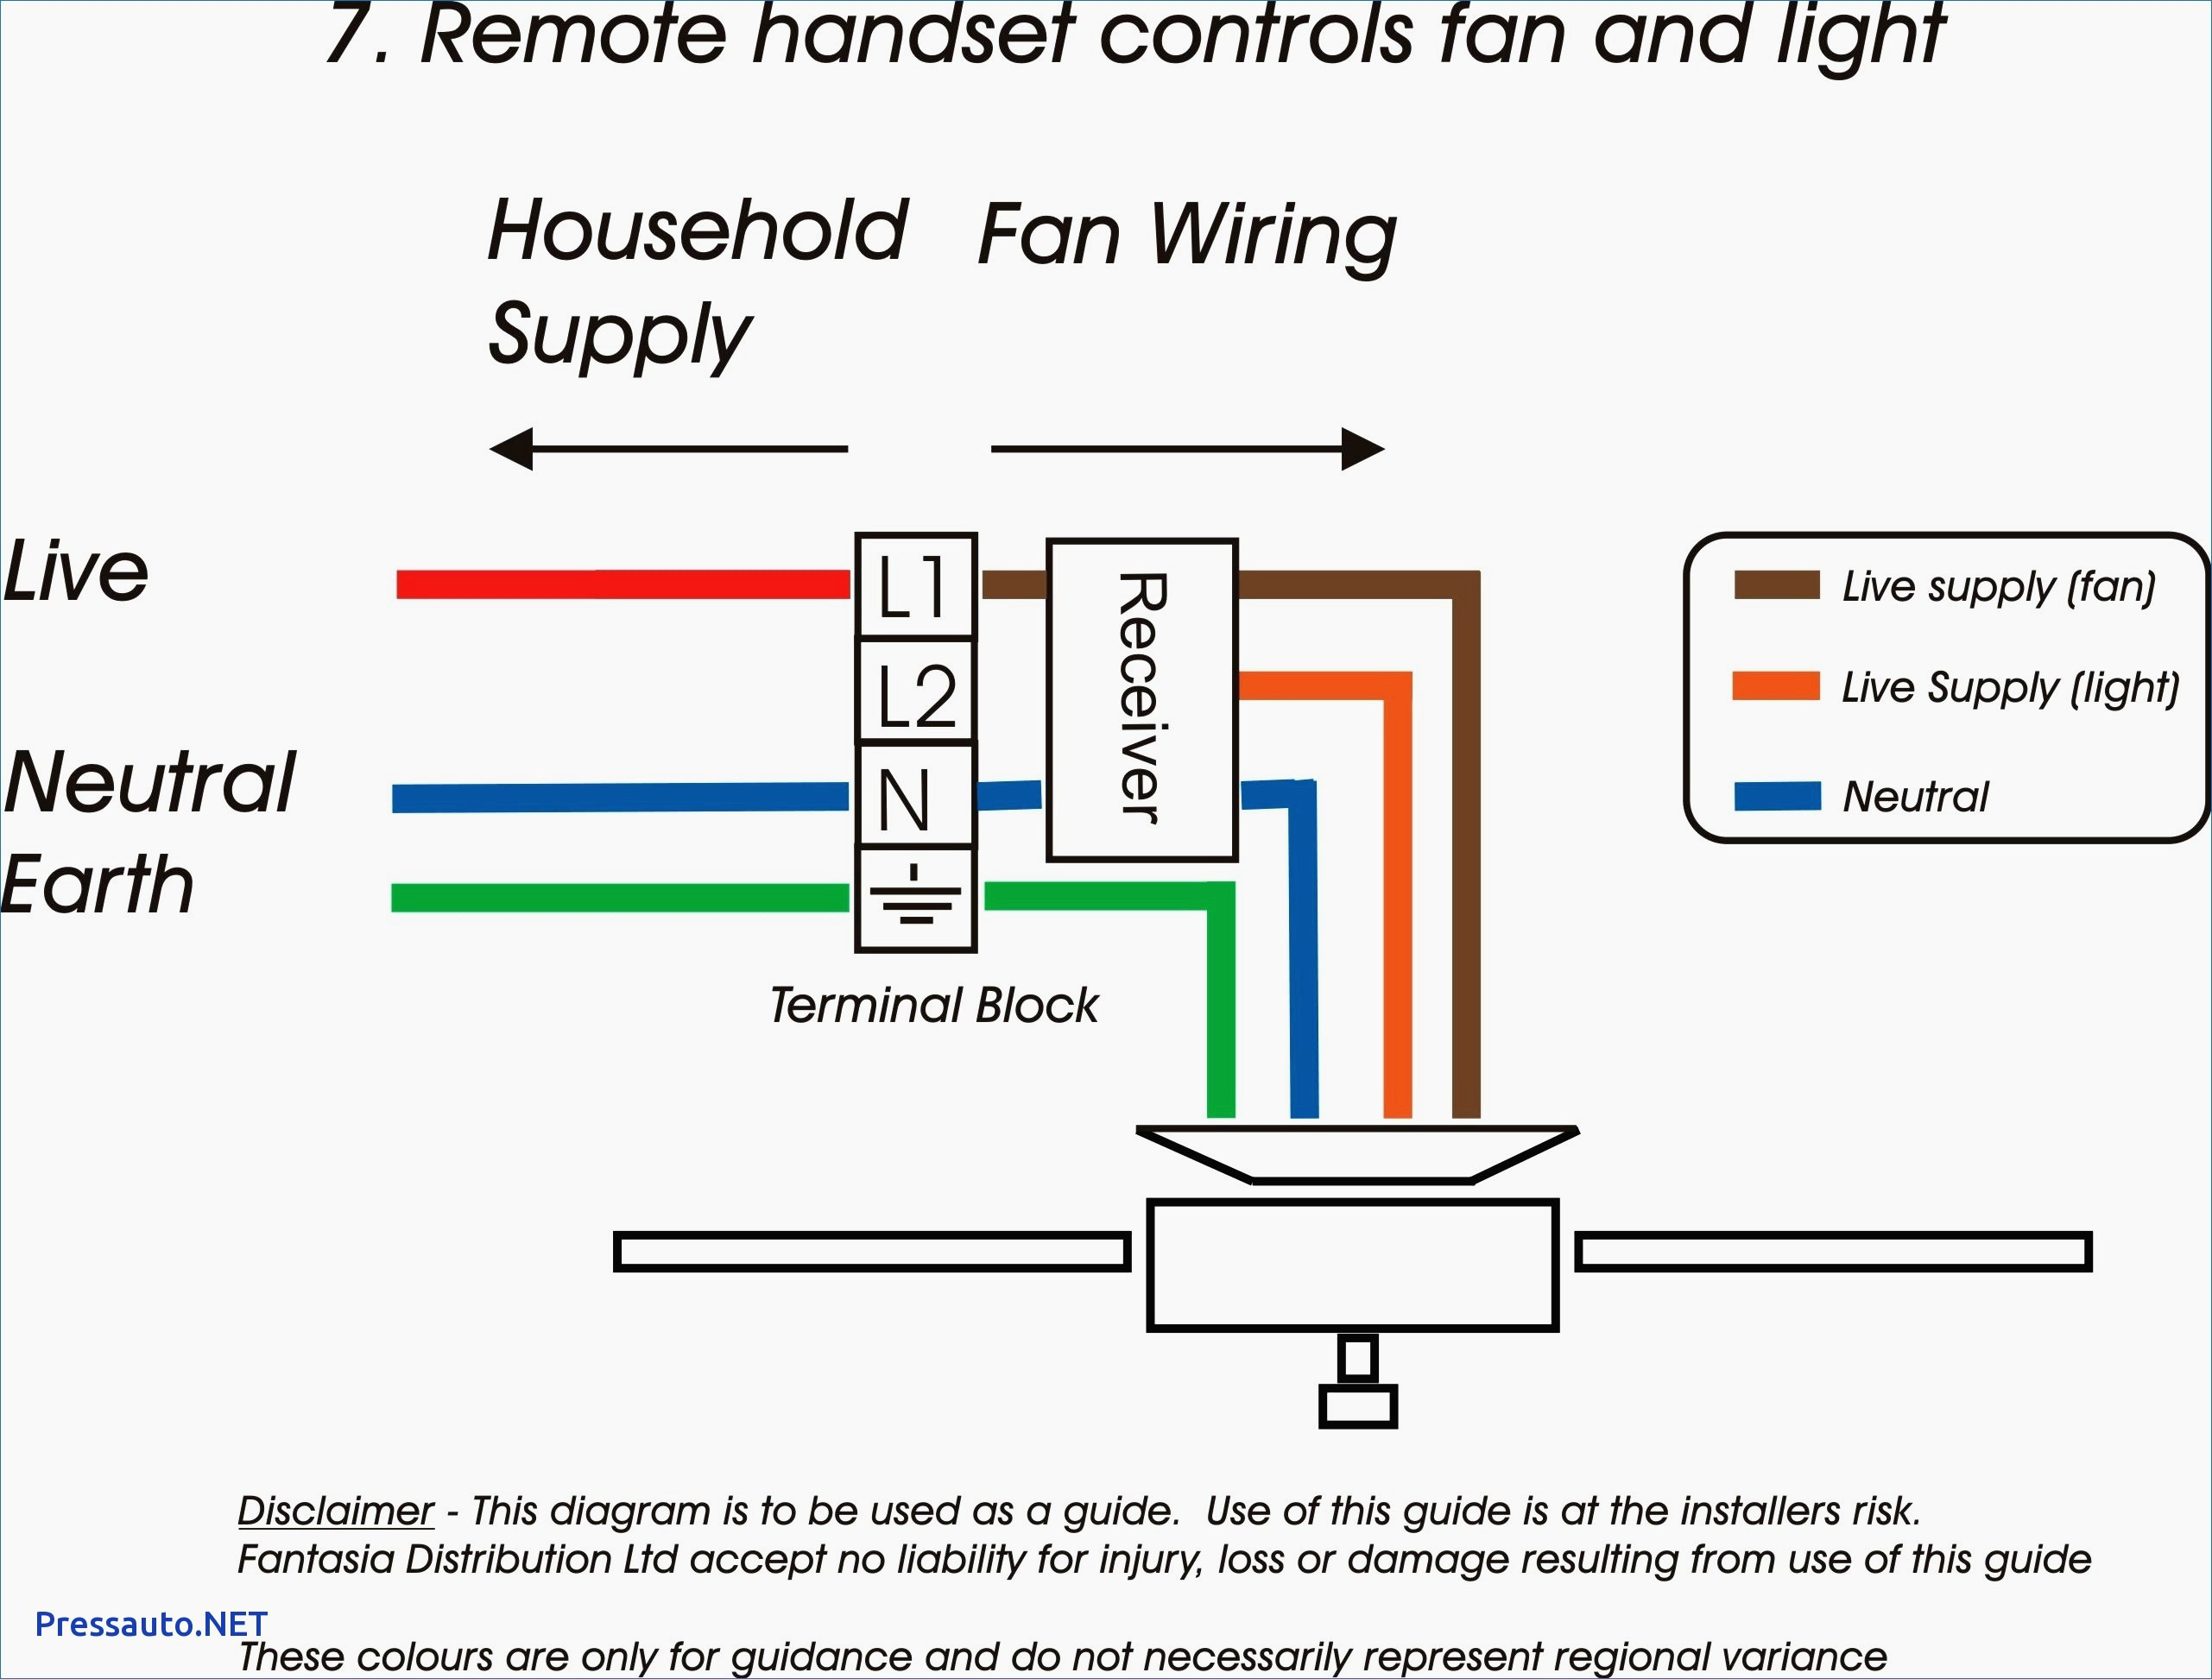 hampton bay ceiling fan wiring diagram with remote Download-Hampton Bay Ceiling Fan Wiring Diagram Awesome Speed Switch Within Control For 5 14-t